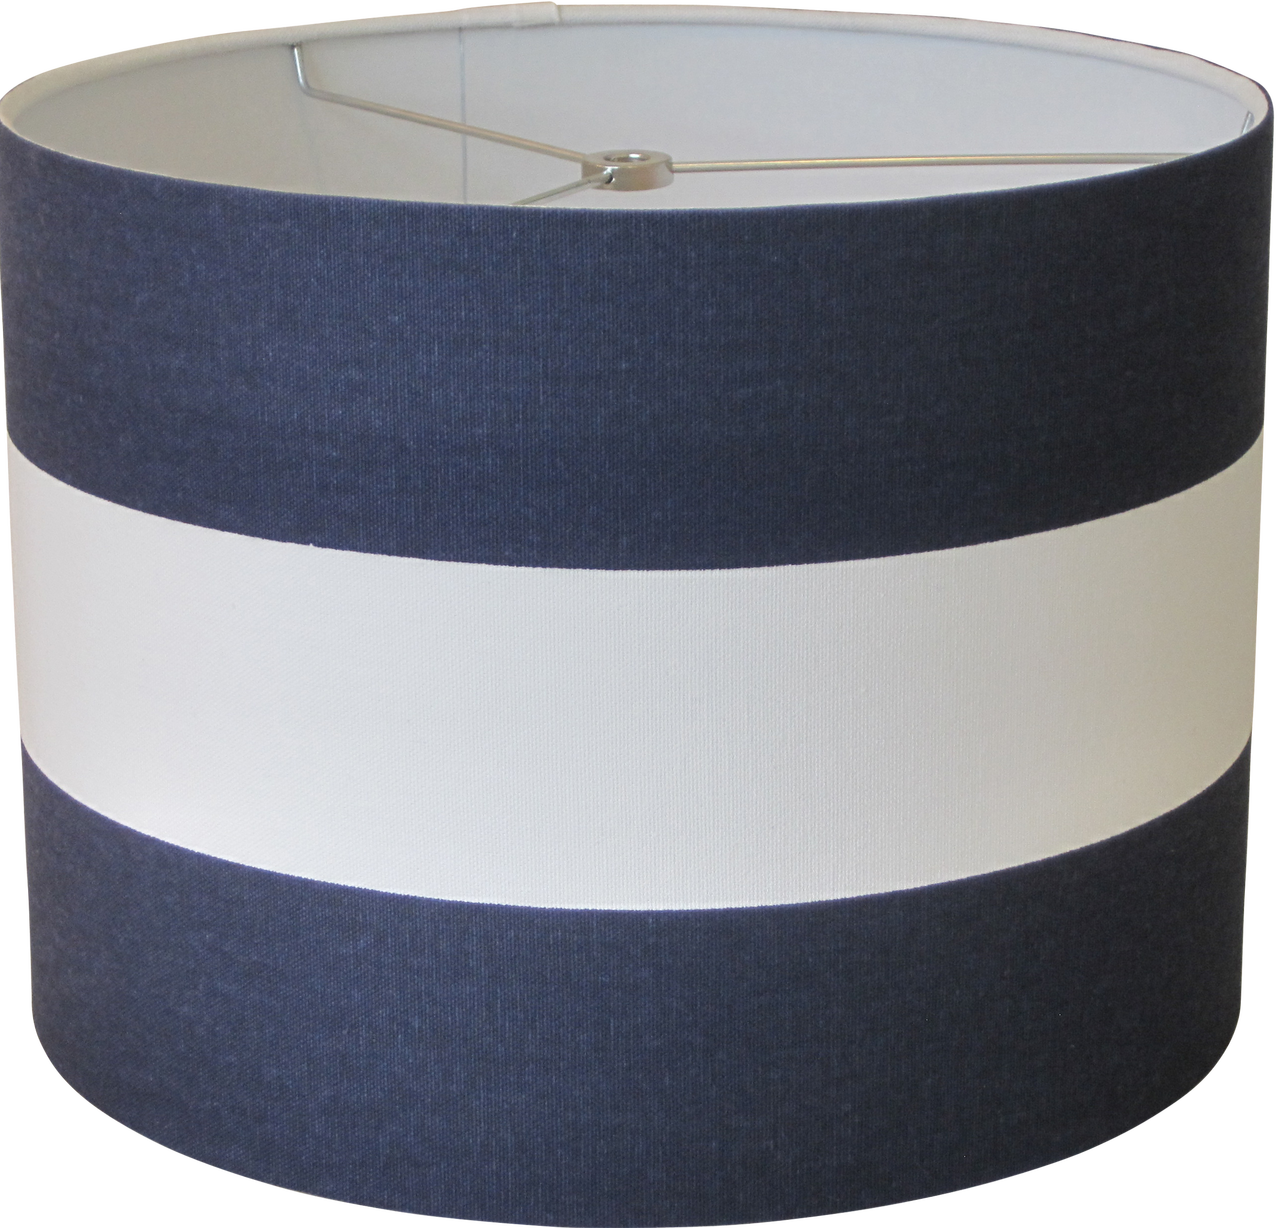 lampshapes.com - Navy Blue and White Striped Lamp Shade - Drum ...